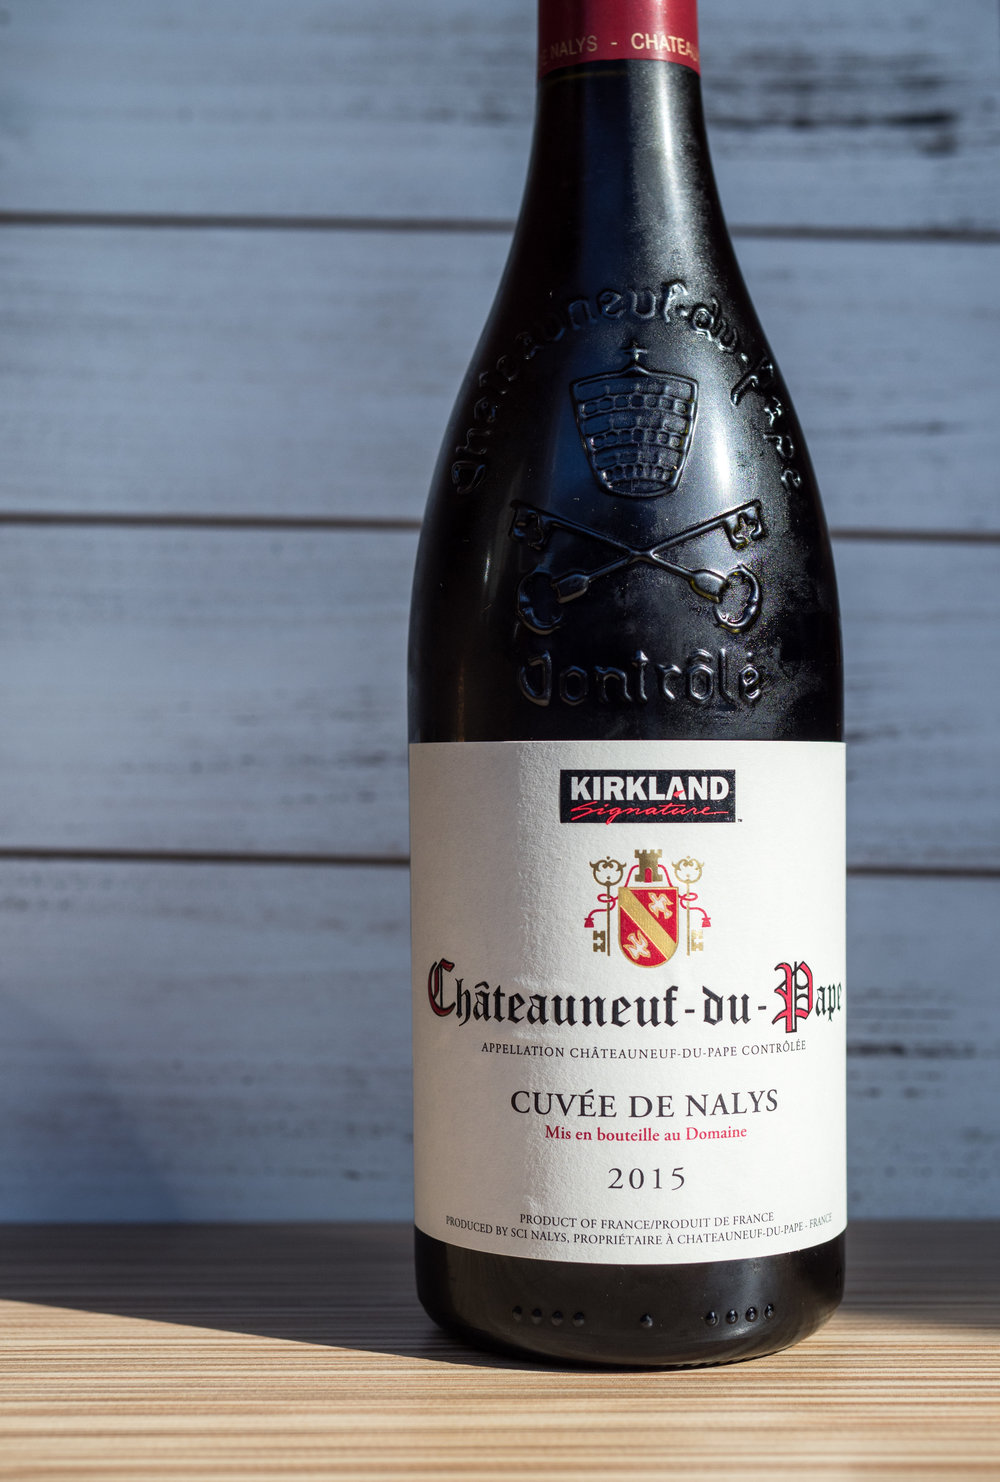 Musings by the Glass - Weekday Wines - Kirkland Signature Chateauneuf-du-Pape